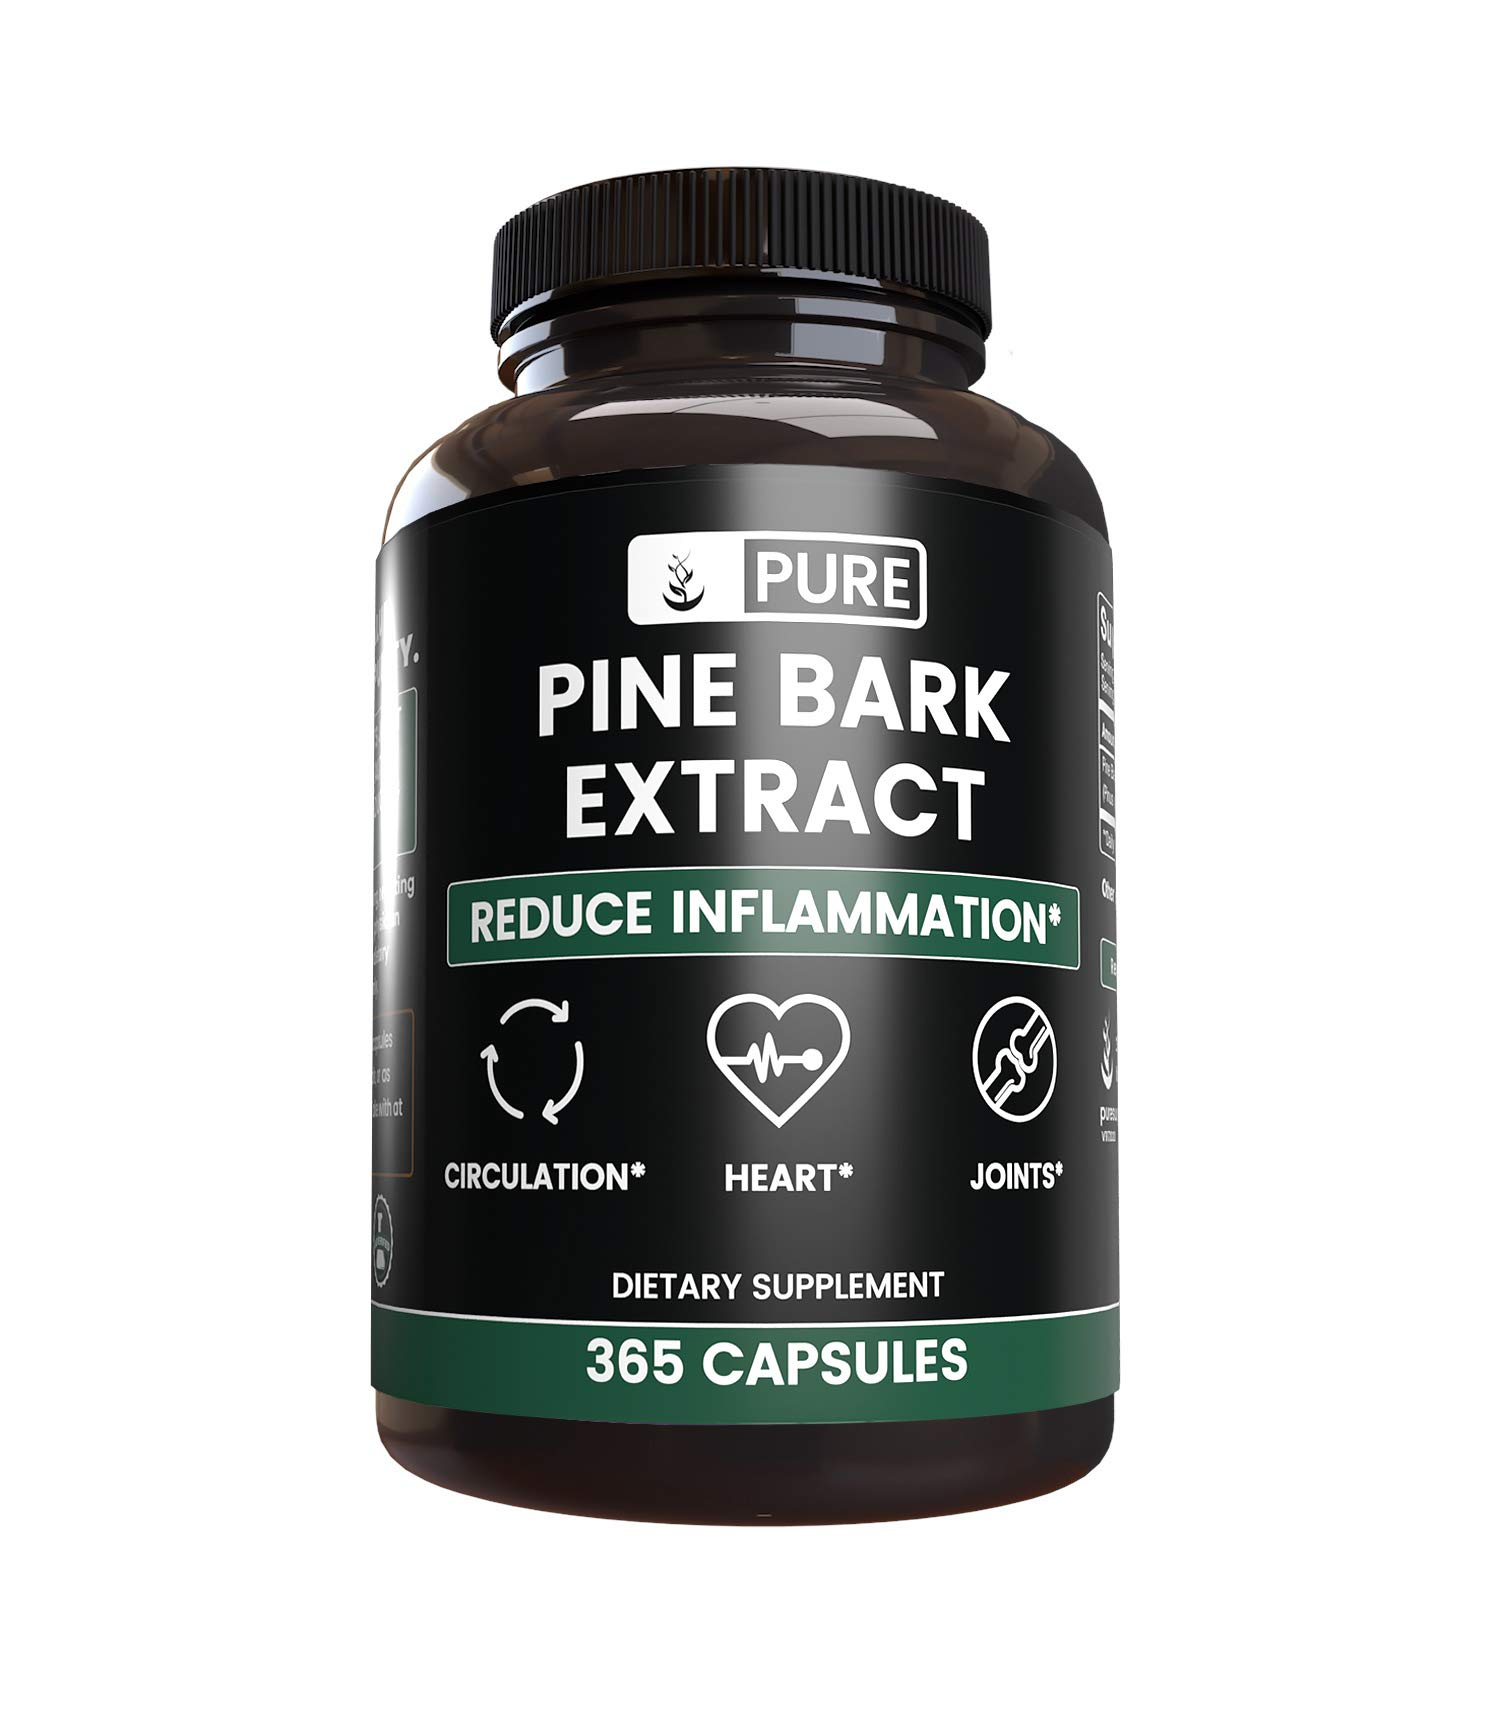 Pure, Pine Bark Extract, (365 Capsules) with 95% Proanthocyanidins, Gluten-Free & Lab Verified, Made in The USA, (650mg Serving)